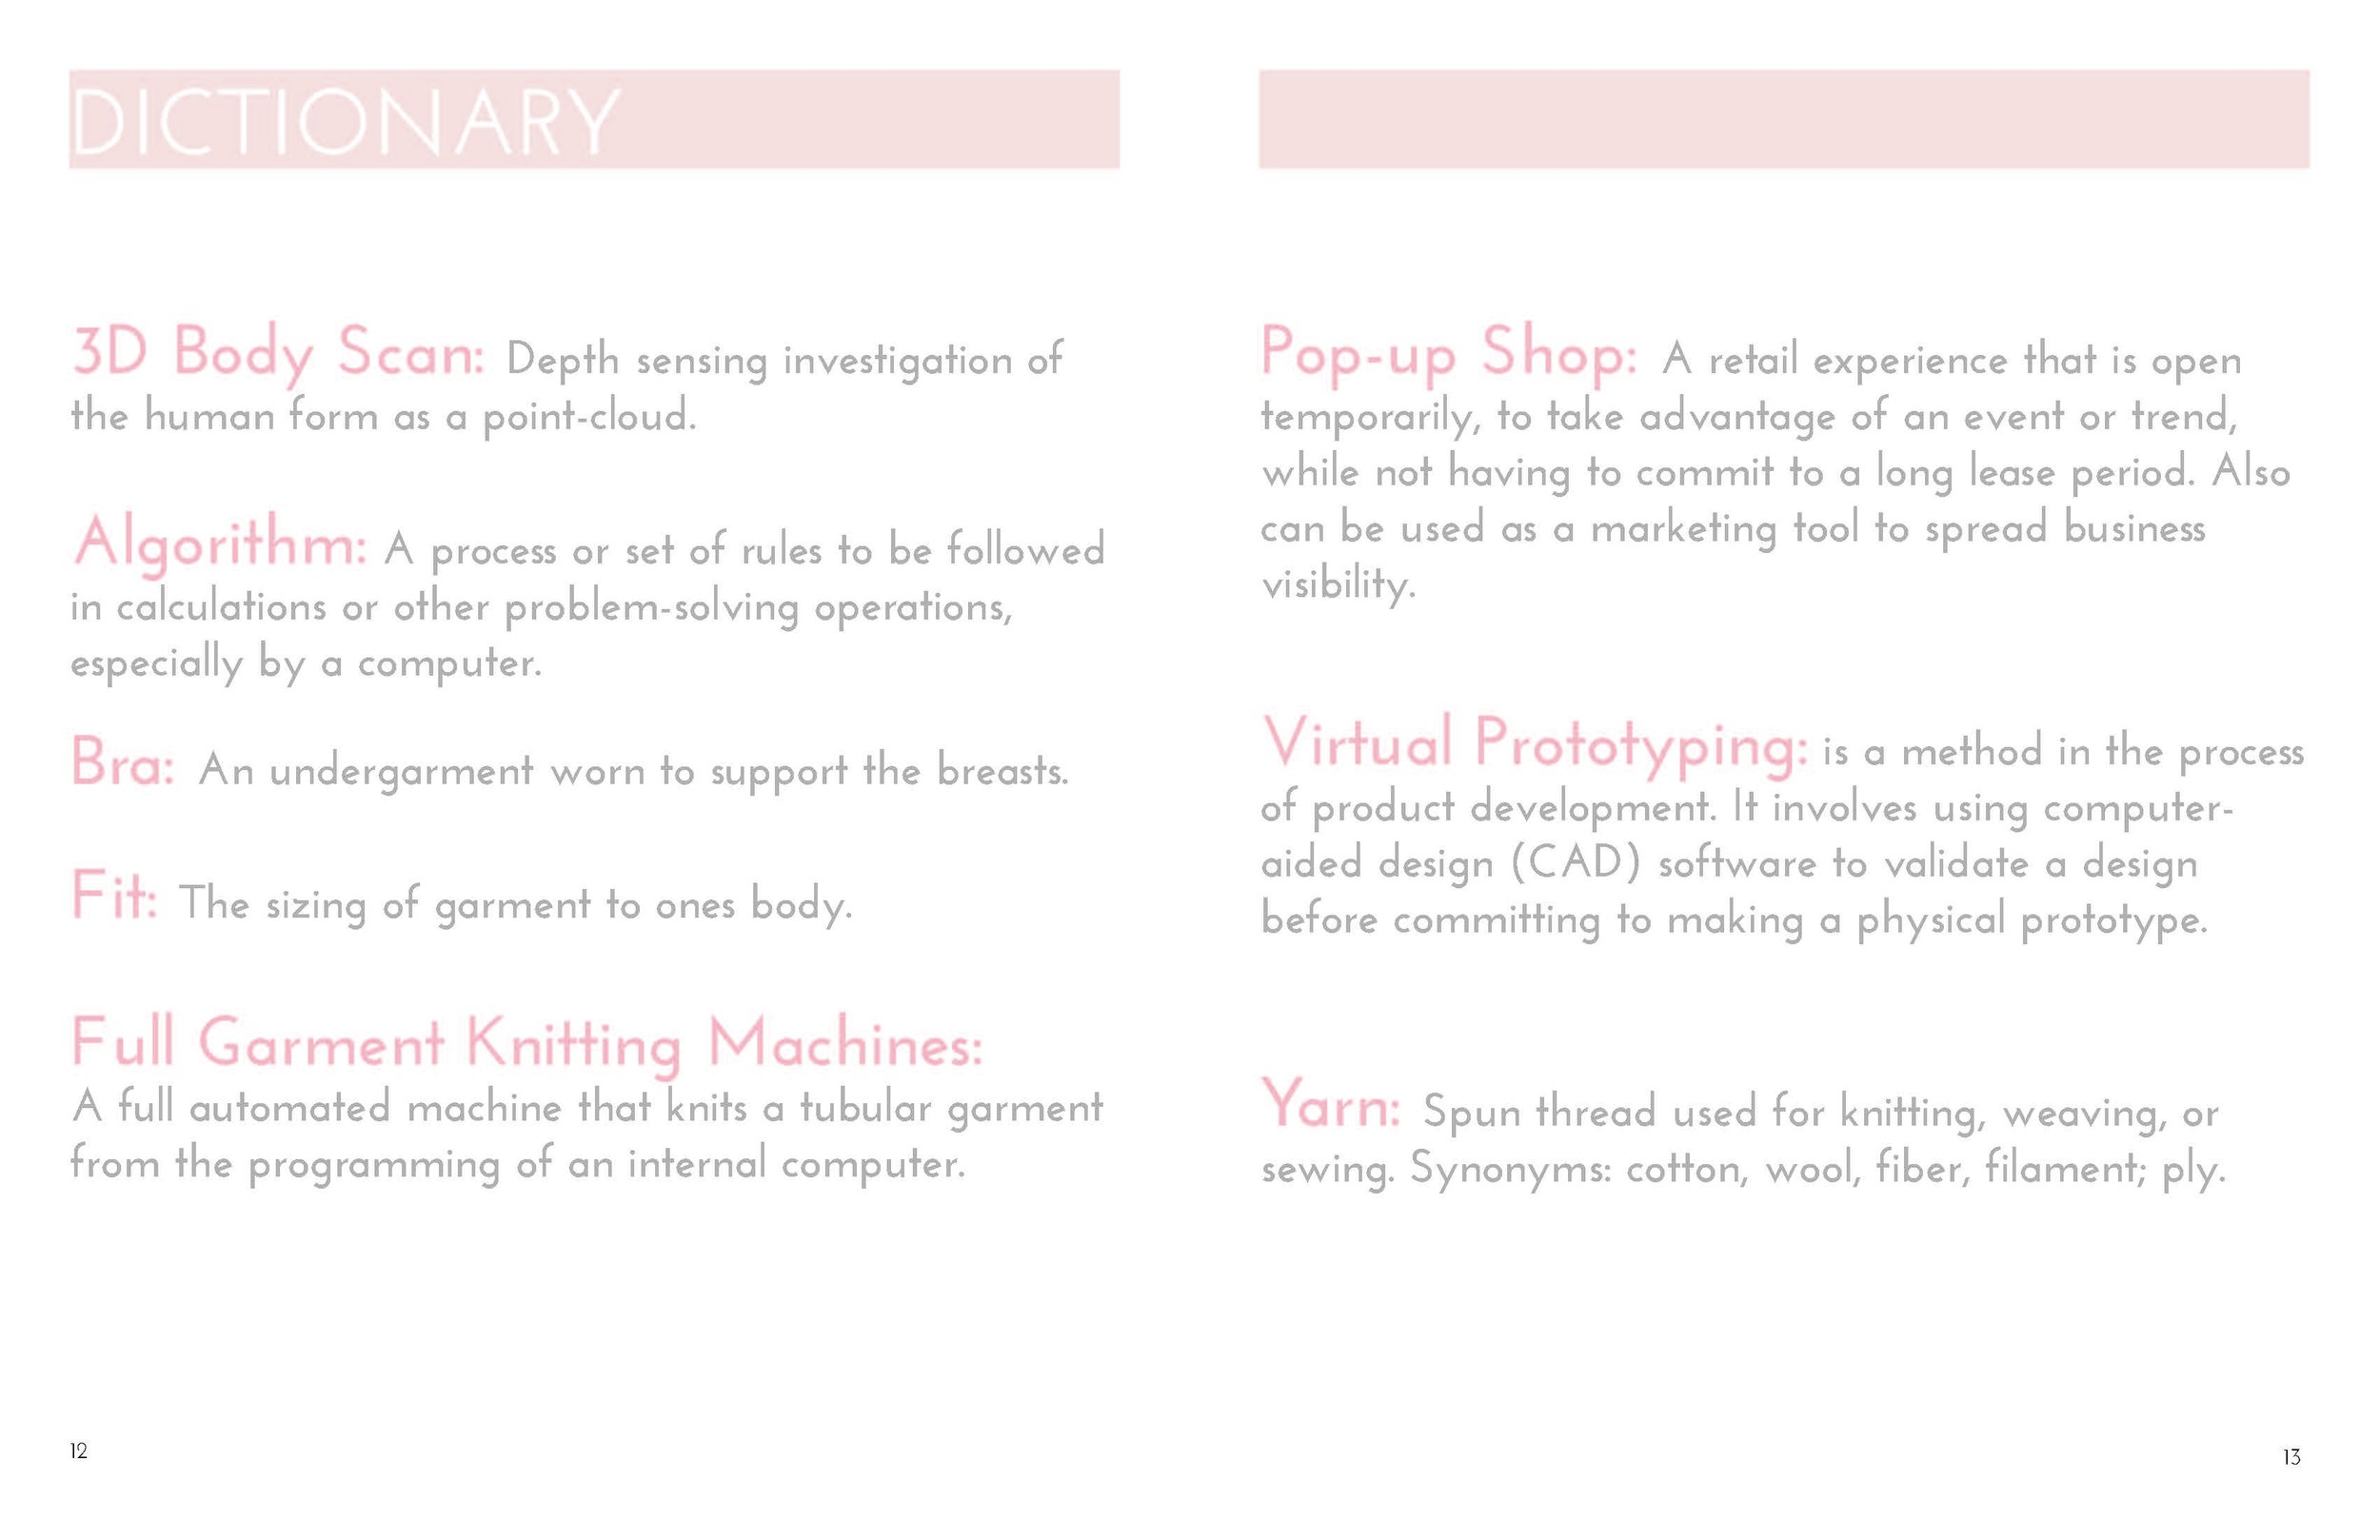 booklet-FINAL2_Page_07.jpg